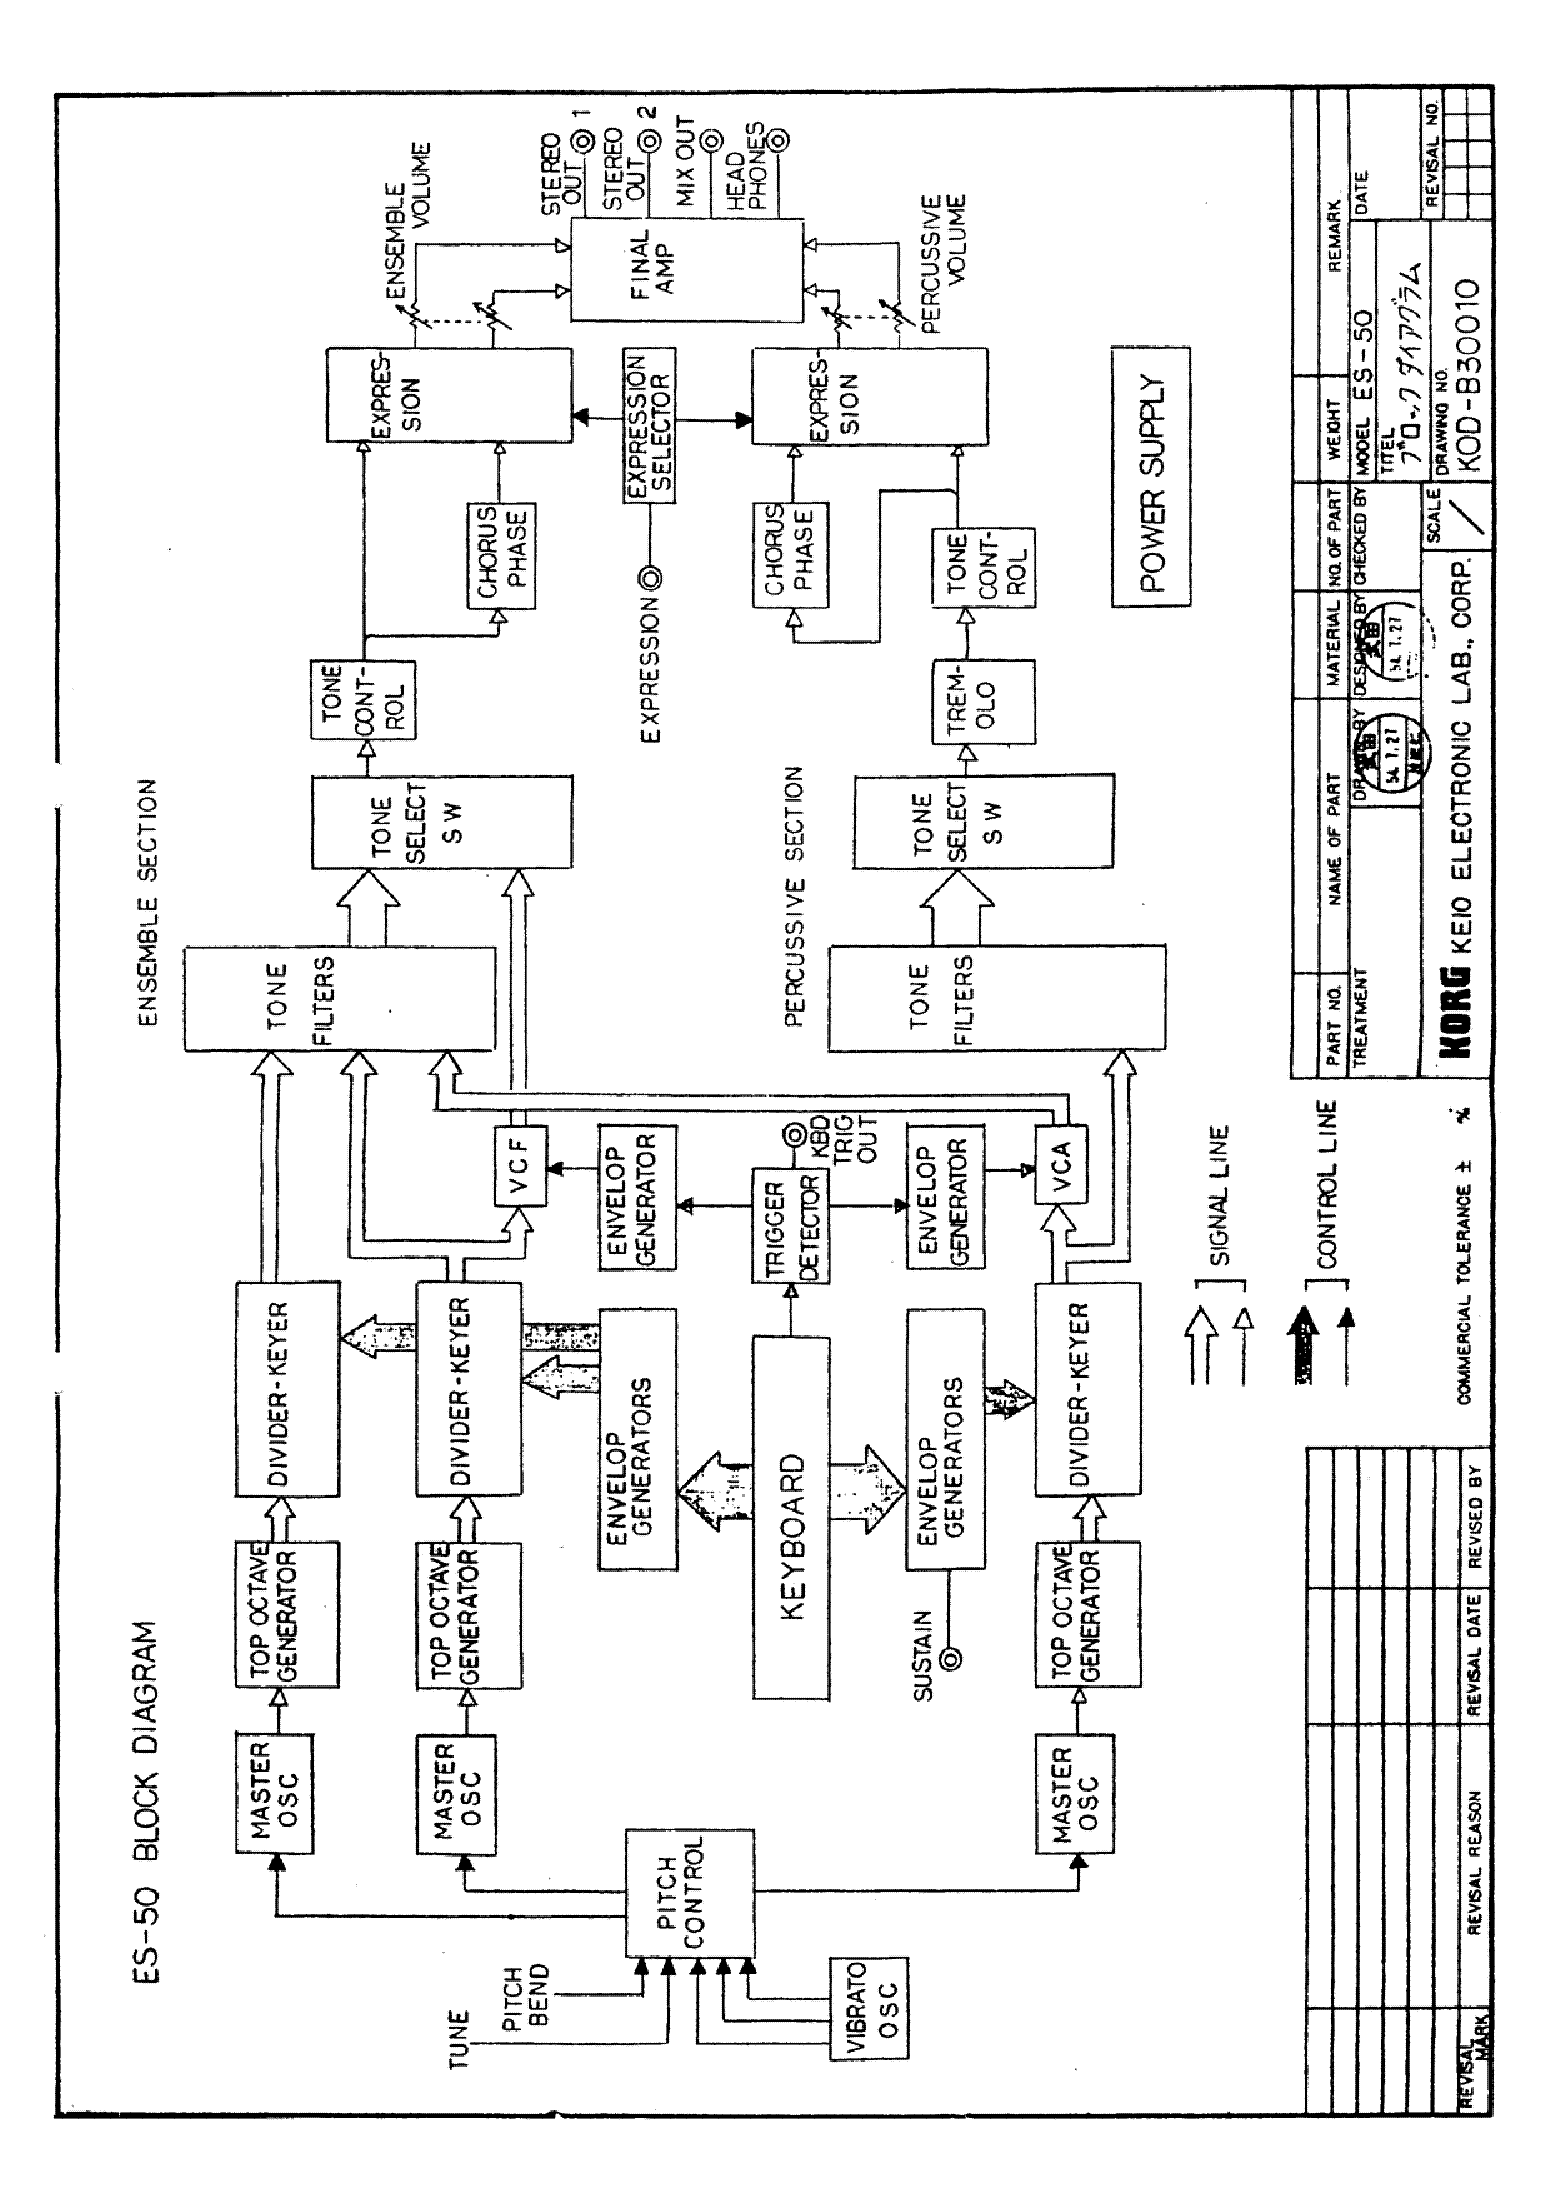 Korg Lambda Es 50 Synthesizer Sch Service Manual Download